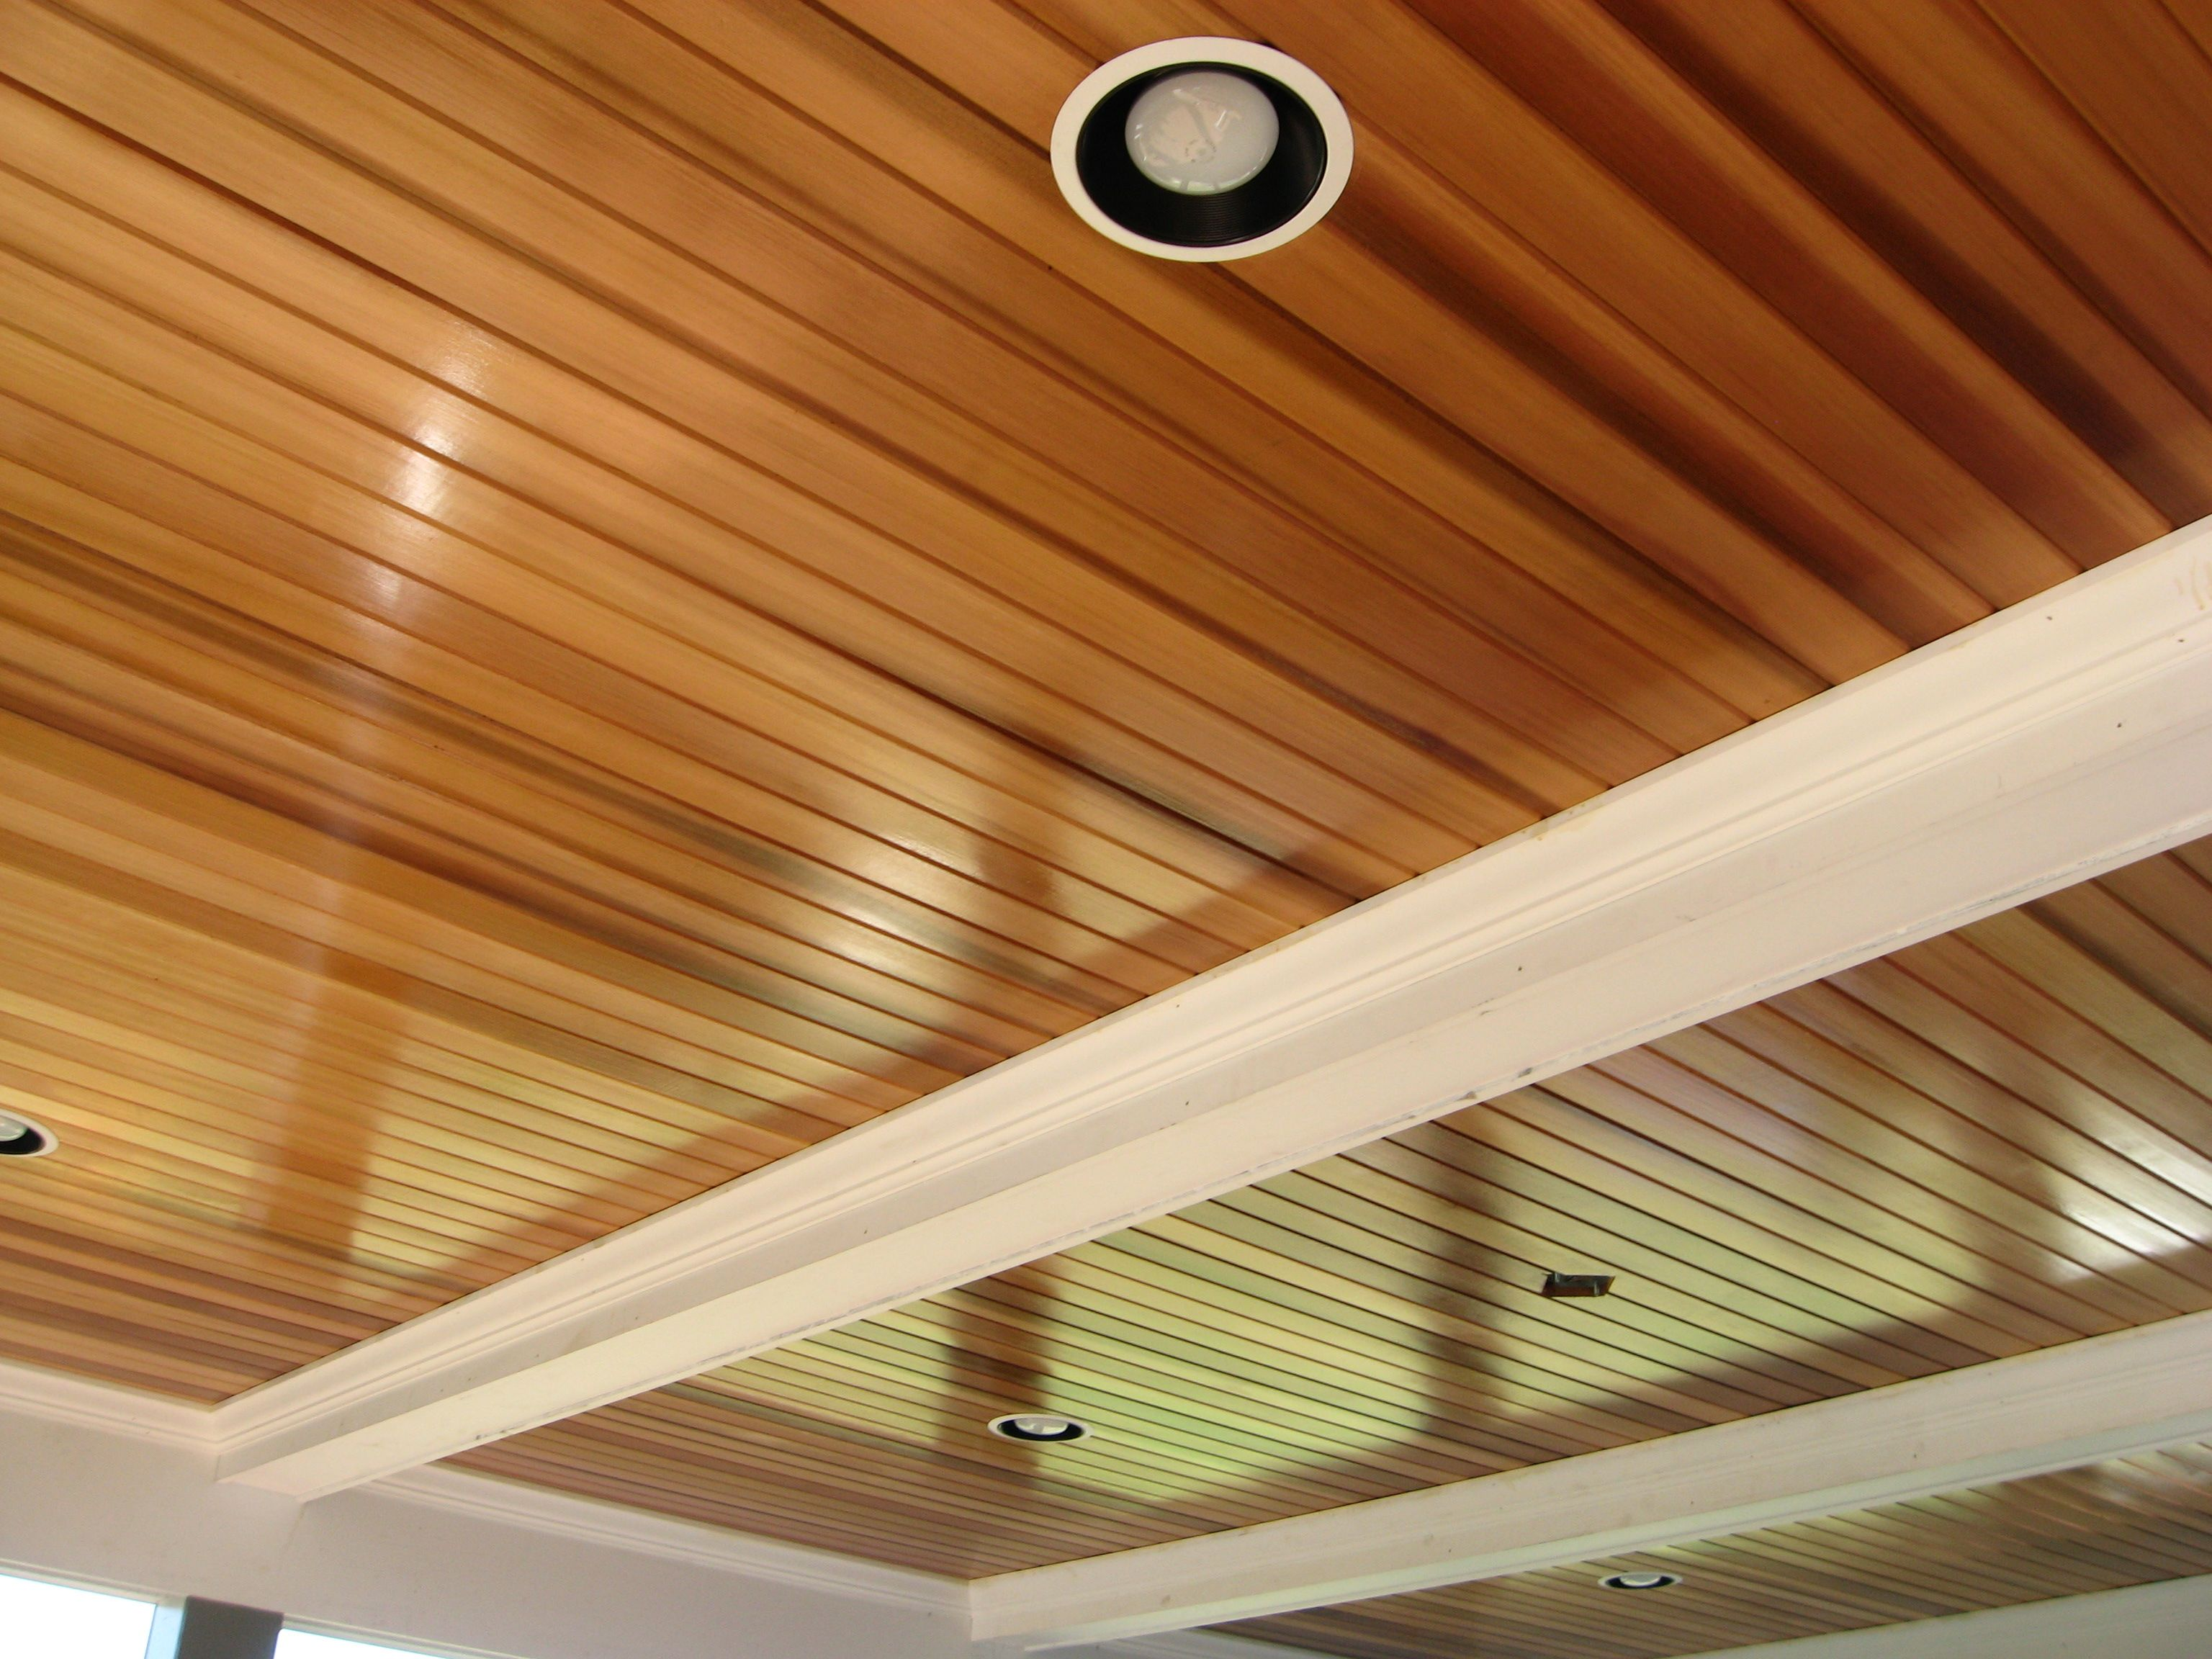 Wood Ceiling Treatments Beautifully Shiny Cedar Ceiling General Interior